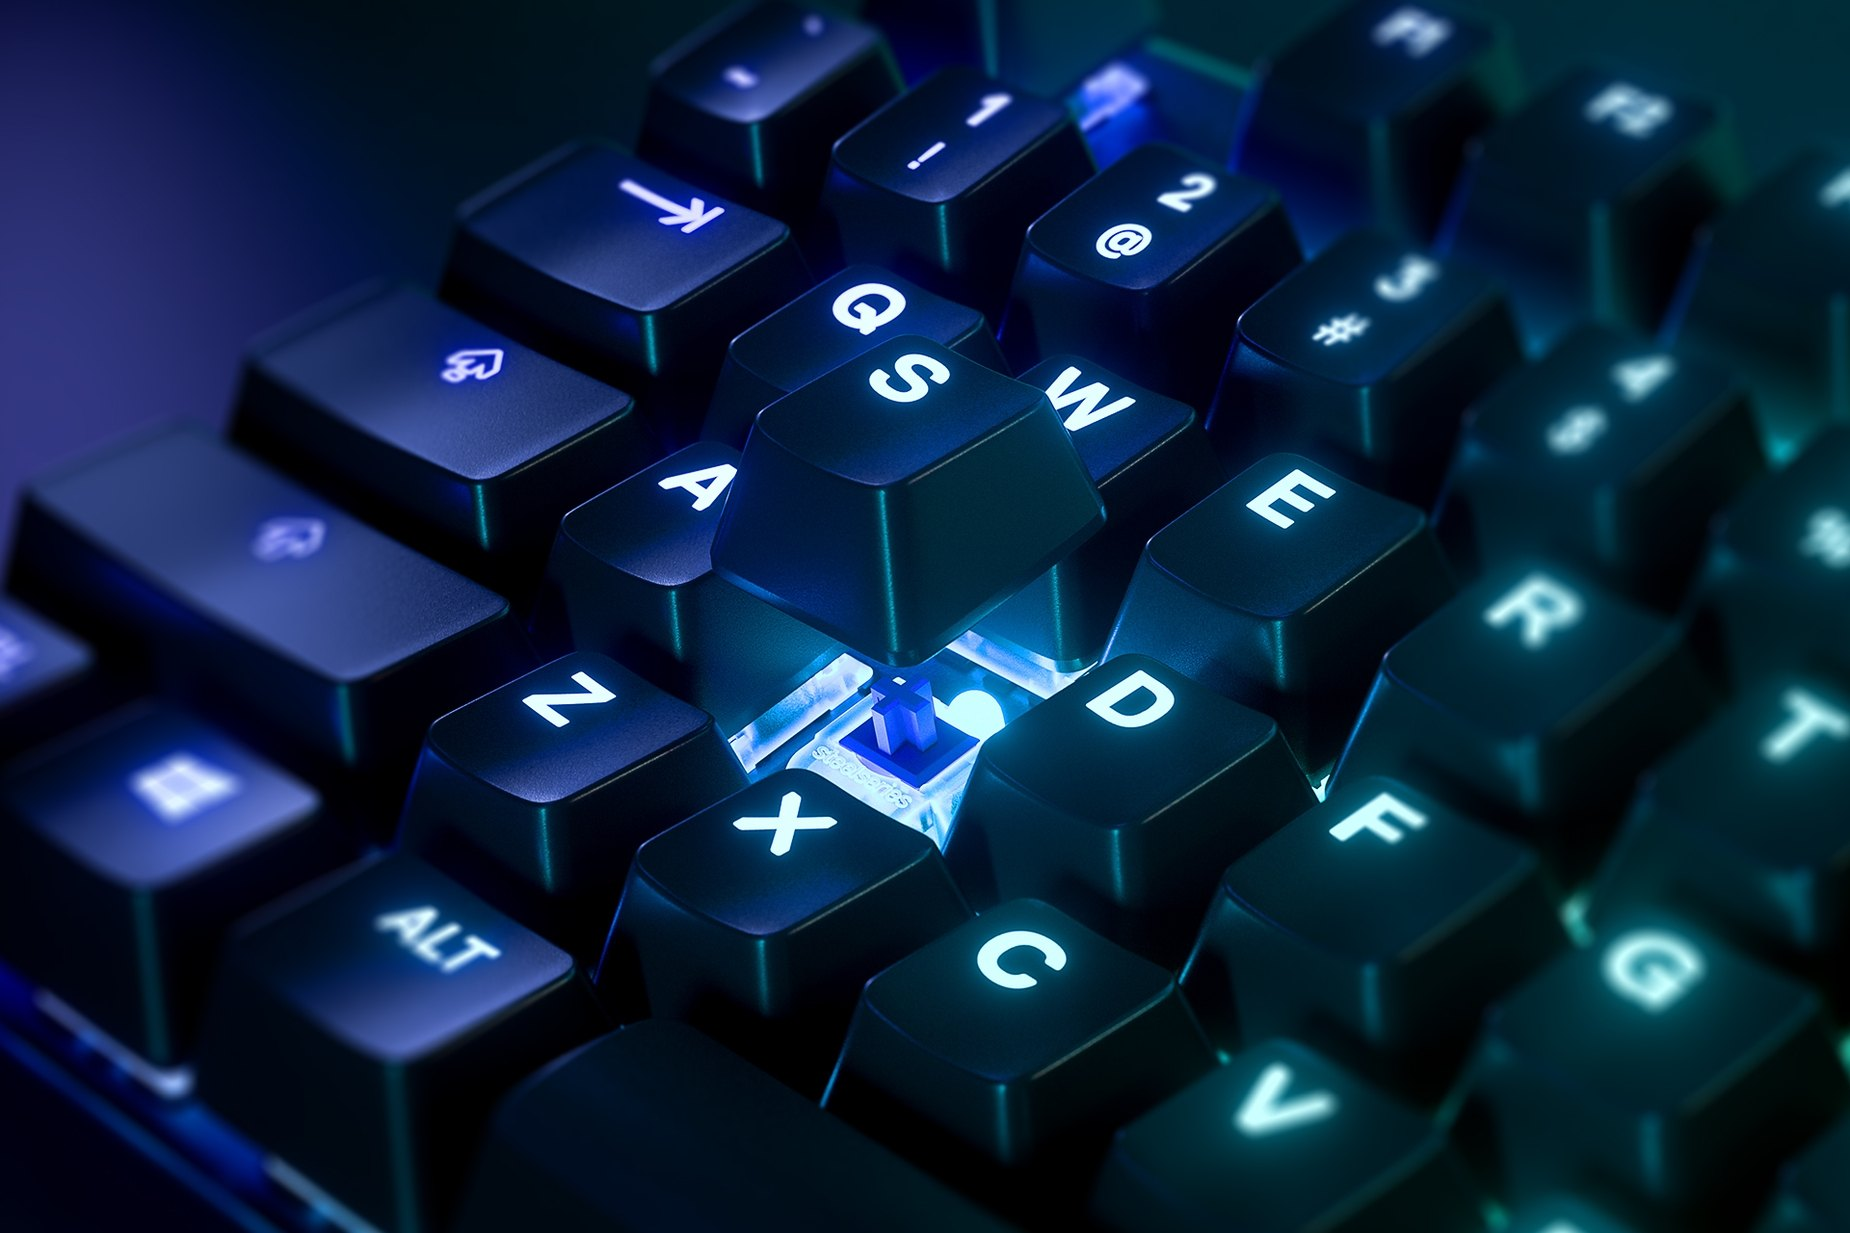 Zoomed in view of a single key on the Taiwanese - Apex 7 (Blue Switch) gaming keyboard, the key is raised up to show the SteelSeries QX2 Mechanical RGB Switch underneath